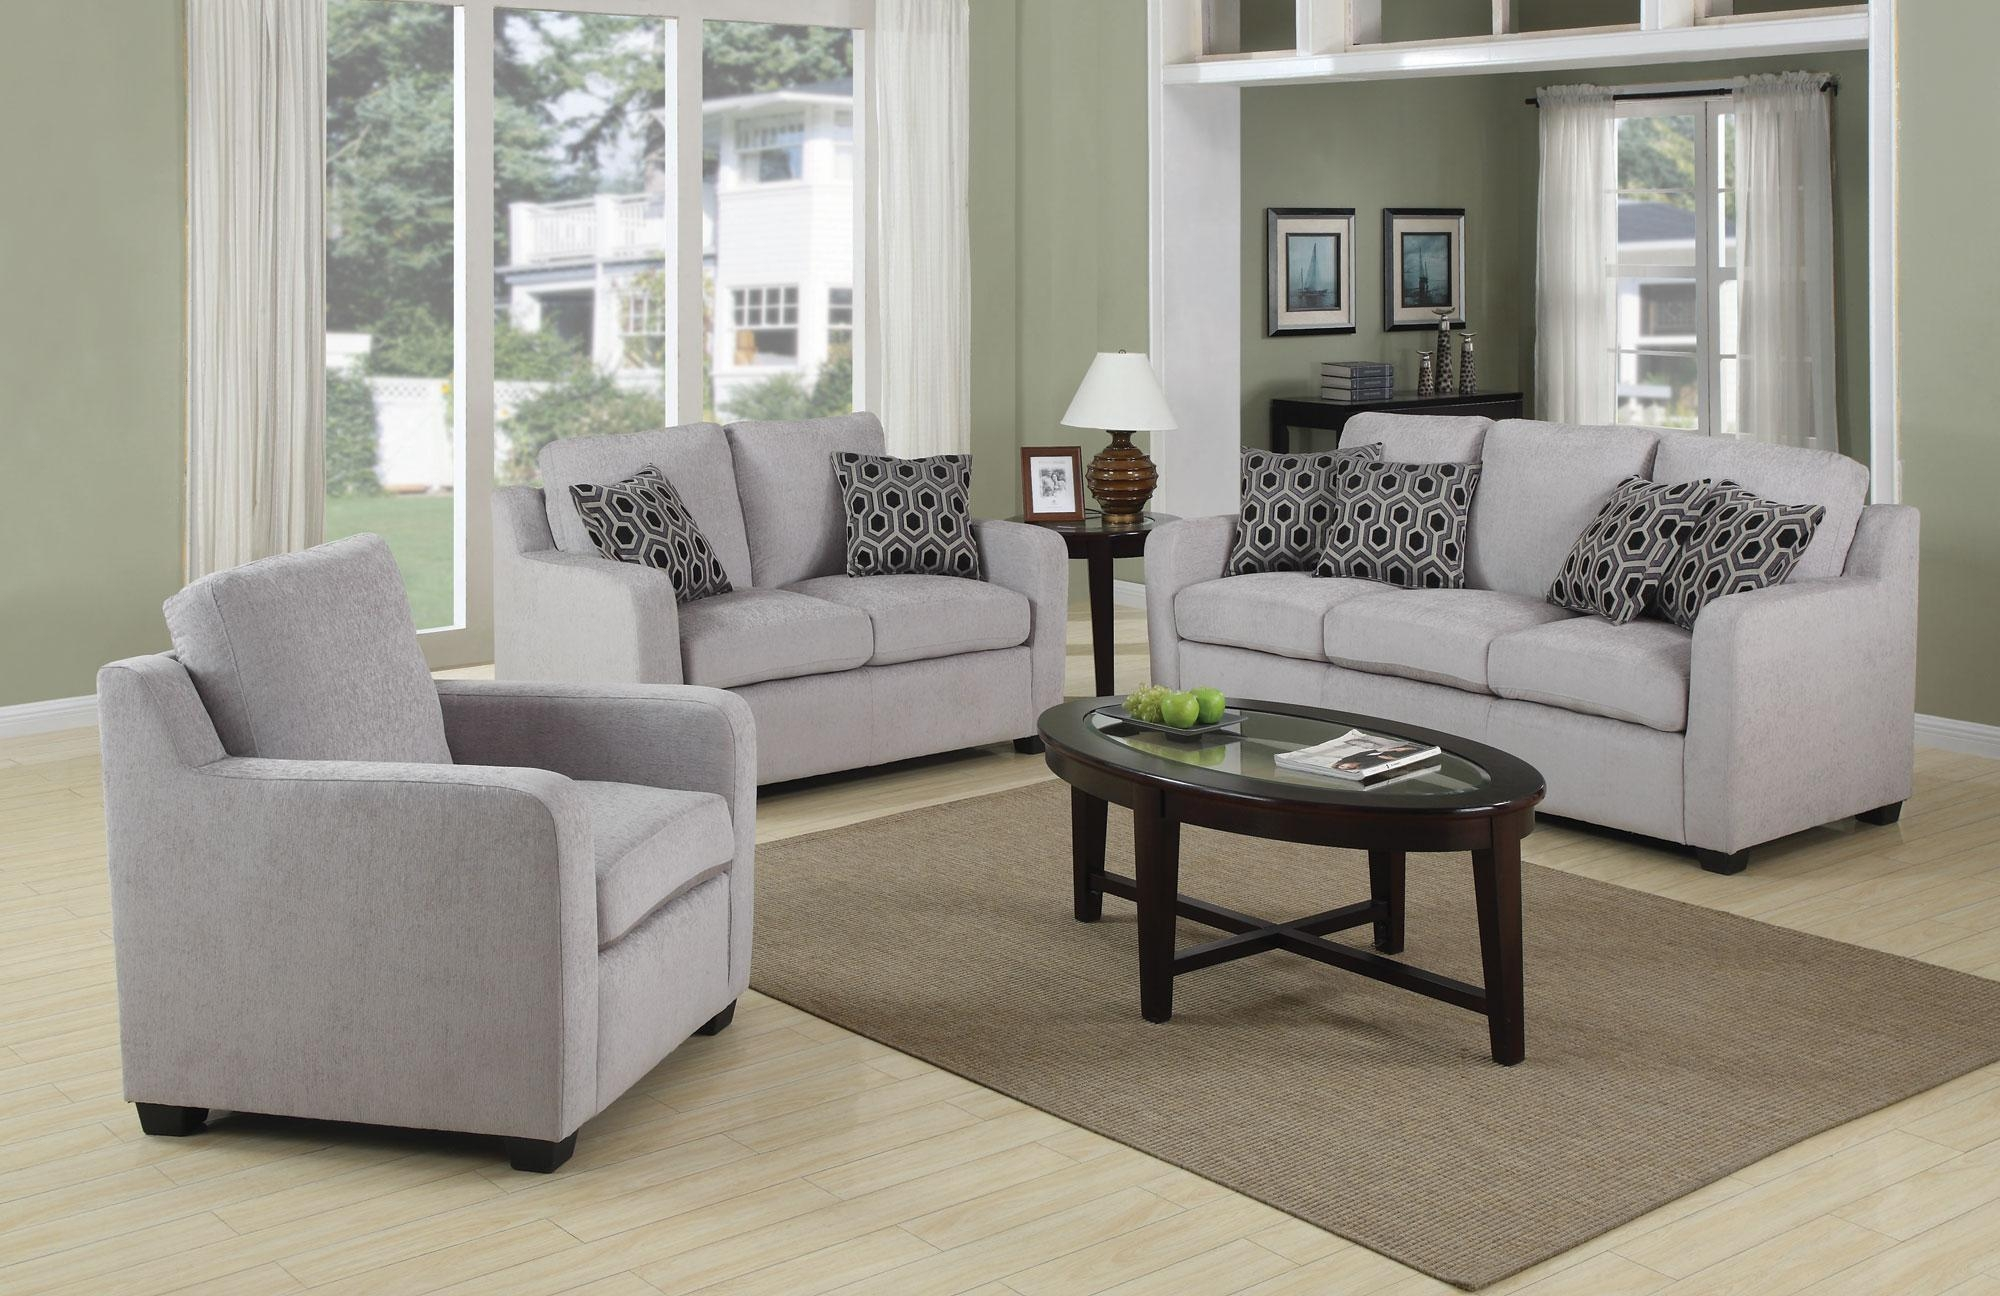 Grey Couch Living Room (Image 7 of 20)